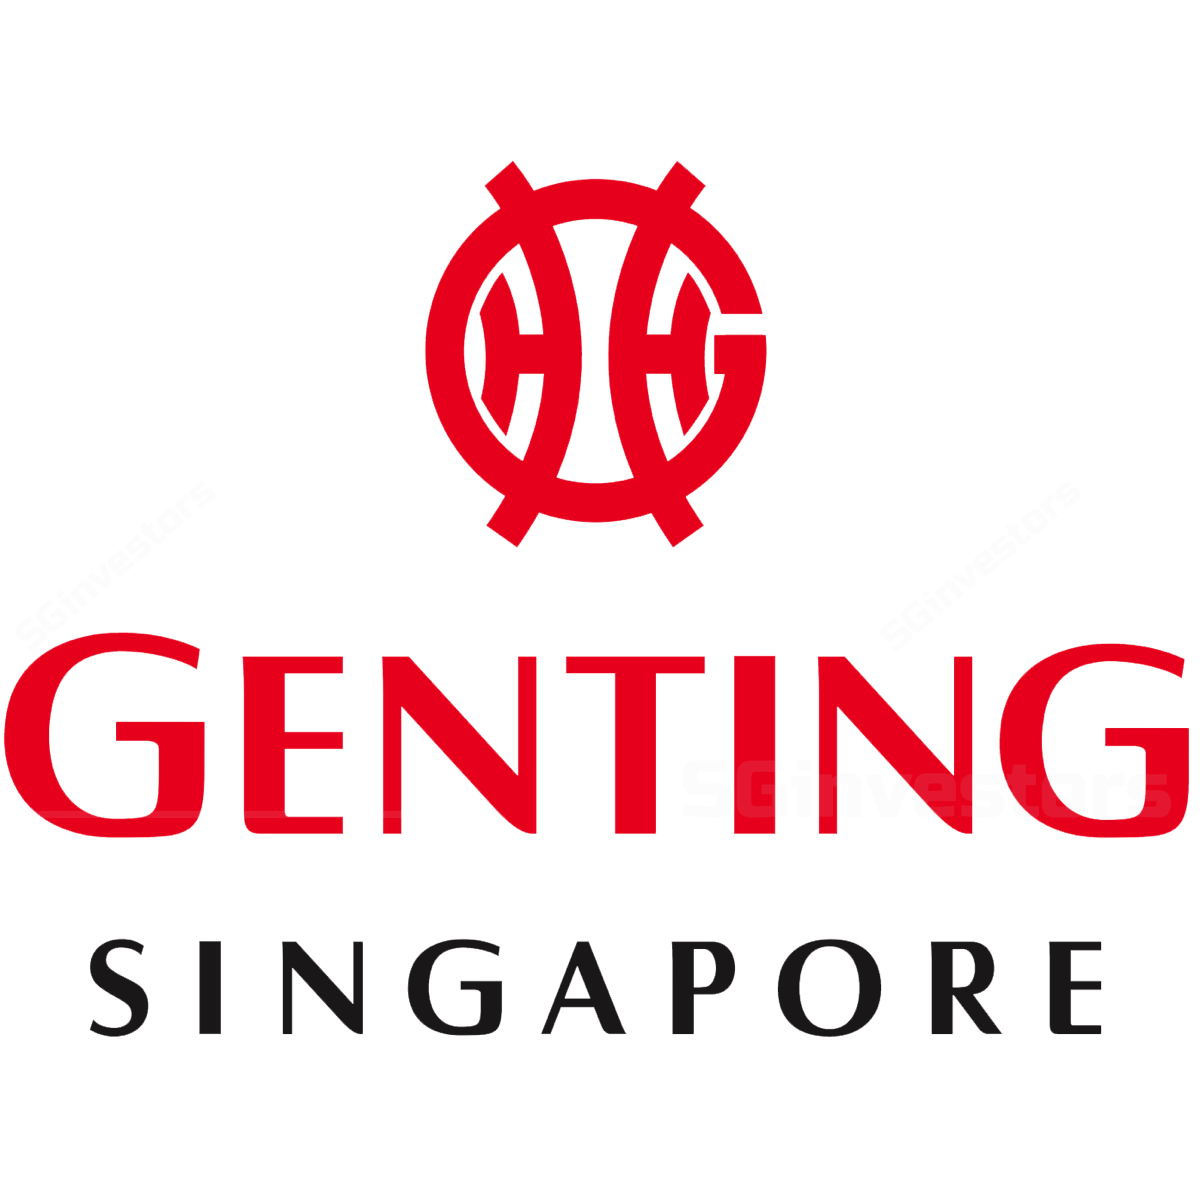 Genting Singapore - CIMB Research 2017-02-23: On a steady course for a re-rating